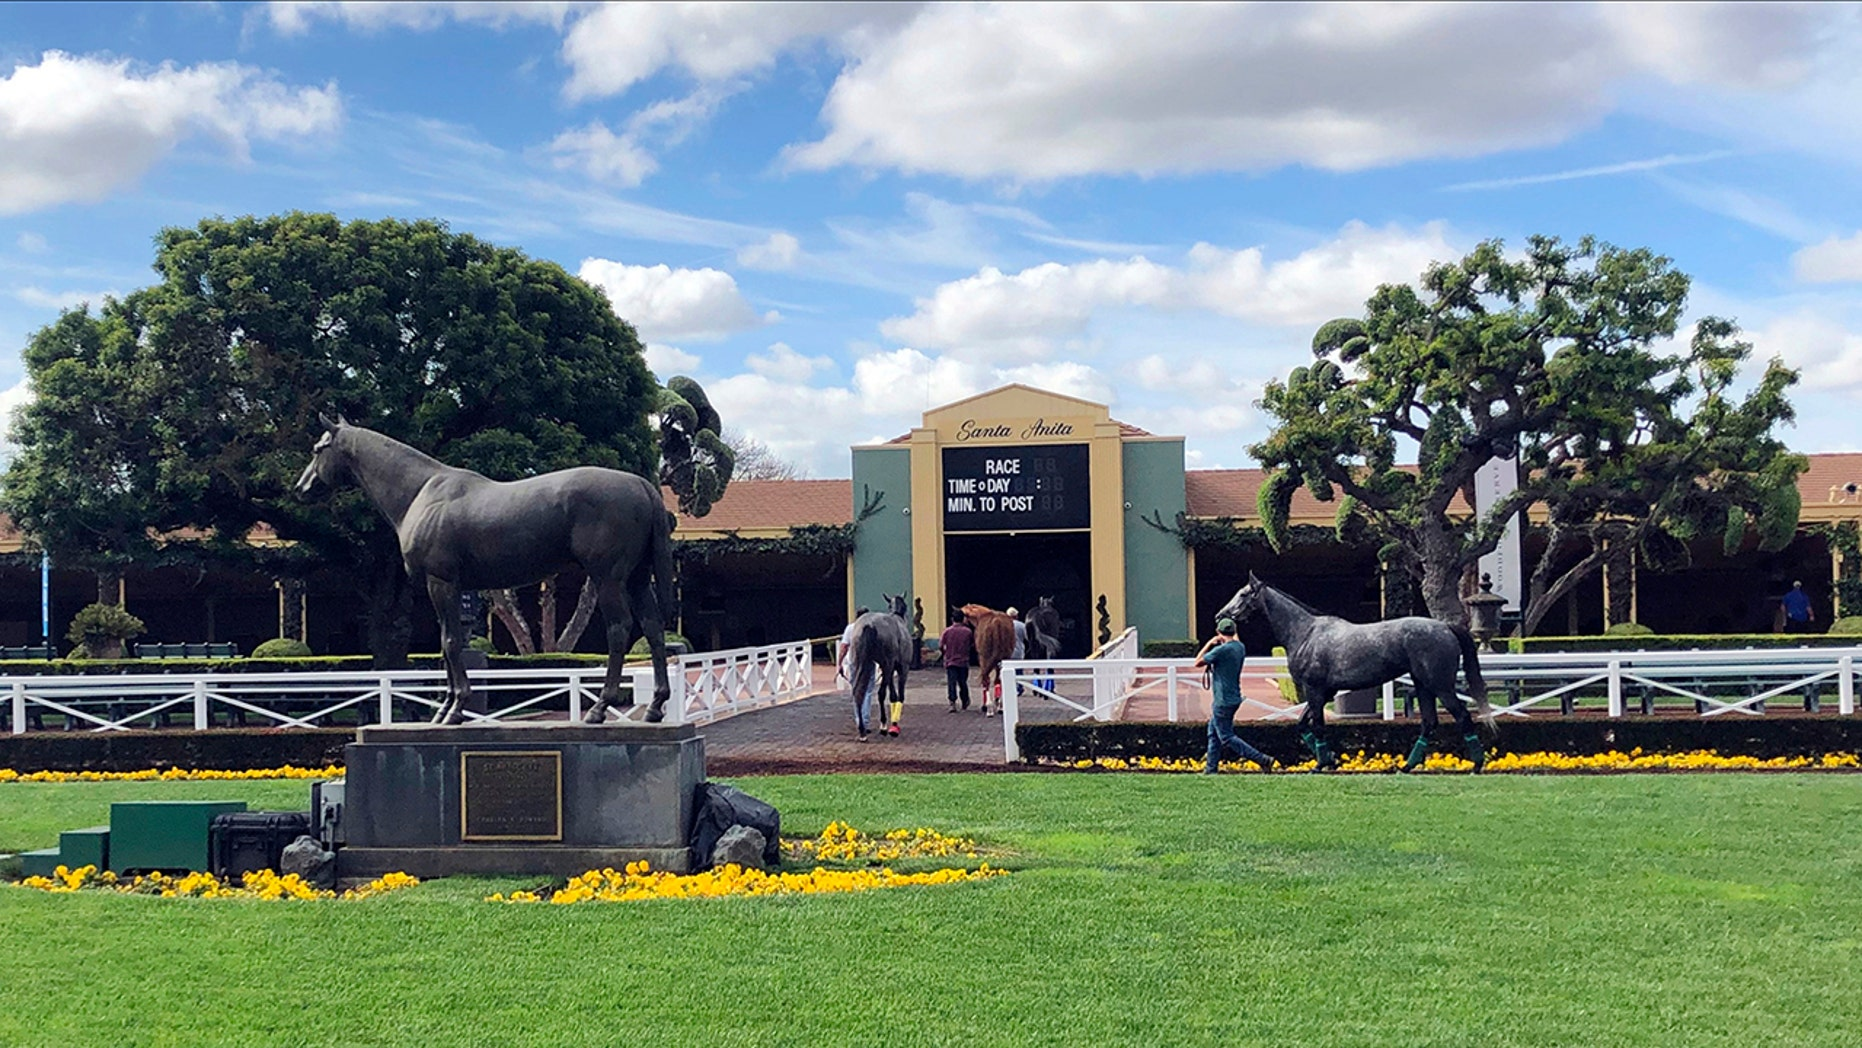 FILE - In this March 28, 2019, file photo, horses are led to paddocks past the Seabiscuit statue during workouts at Santa Anita Park in Arcadia, Calif. A 3-year-old gelding was fatally injured in the fifth race at Santa Anita on Saturday, becoming the 34th horse to die at the track since December. (AP Photo/Amanda Lee Myers, File)